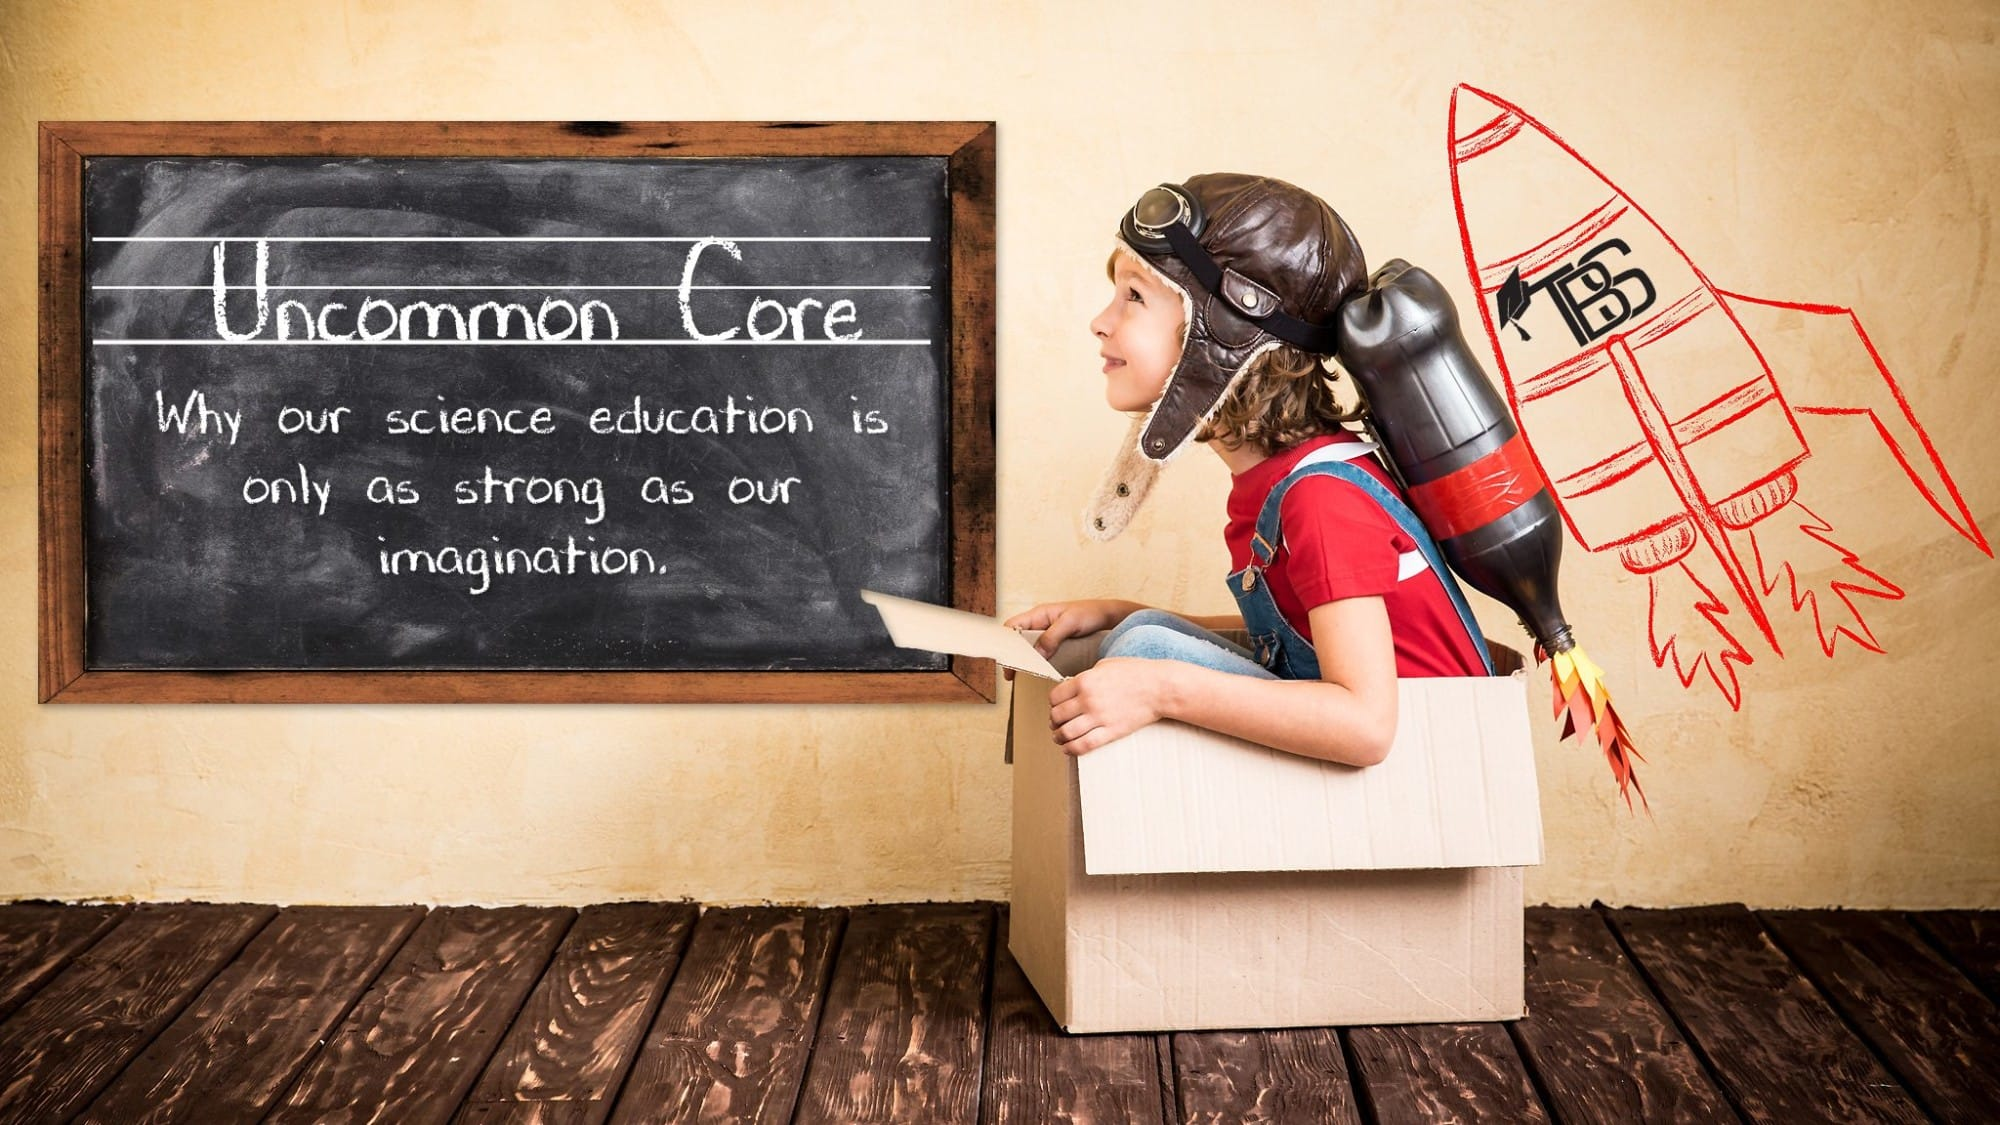 Uncommon Core: Science is only as powerful as imagination